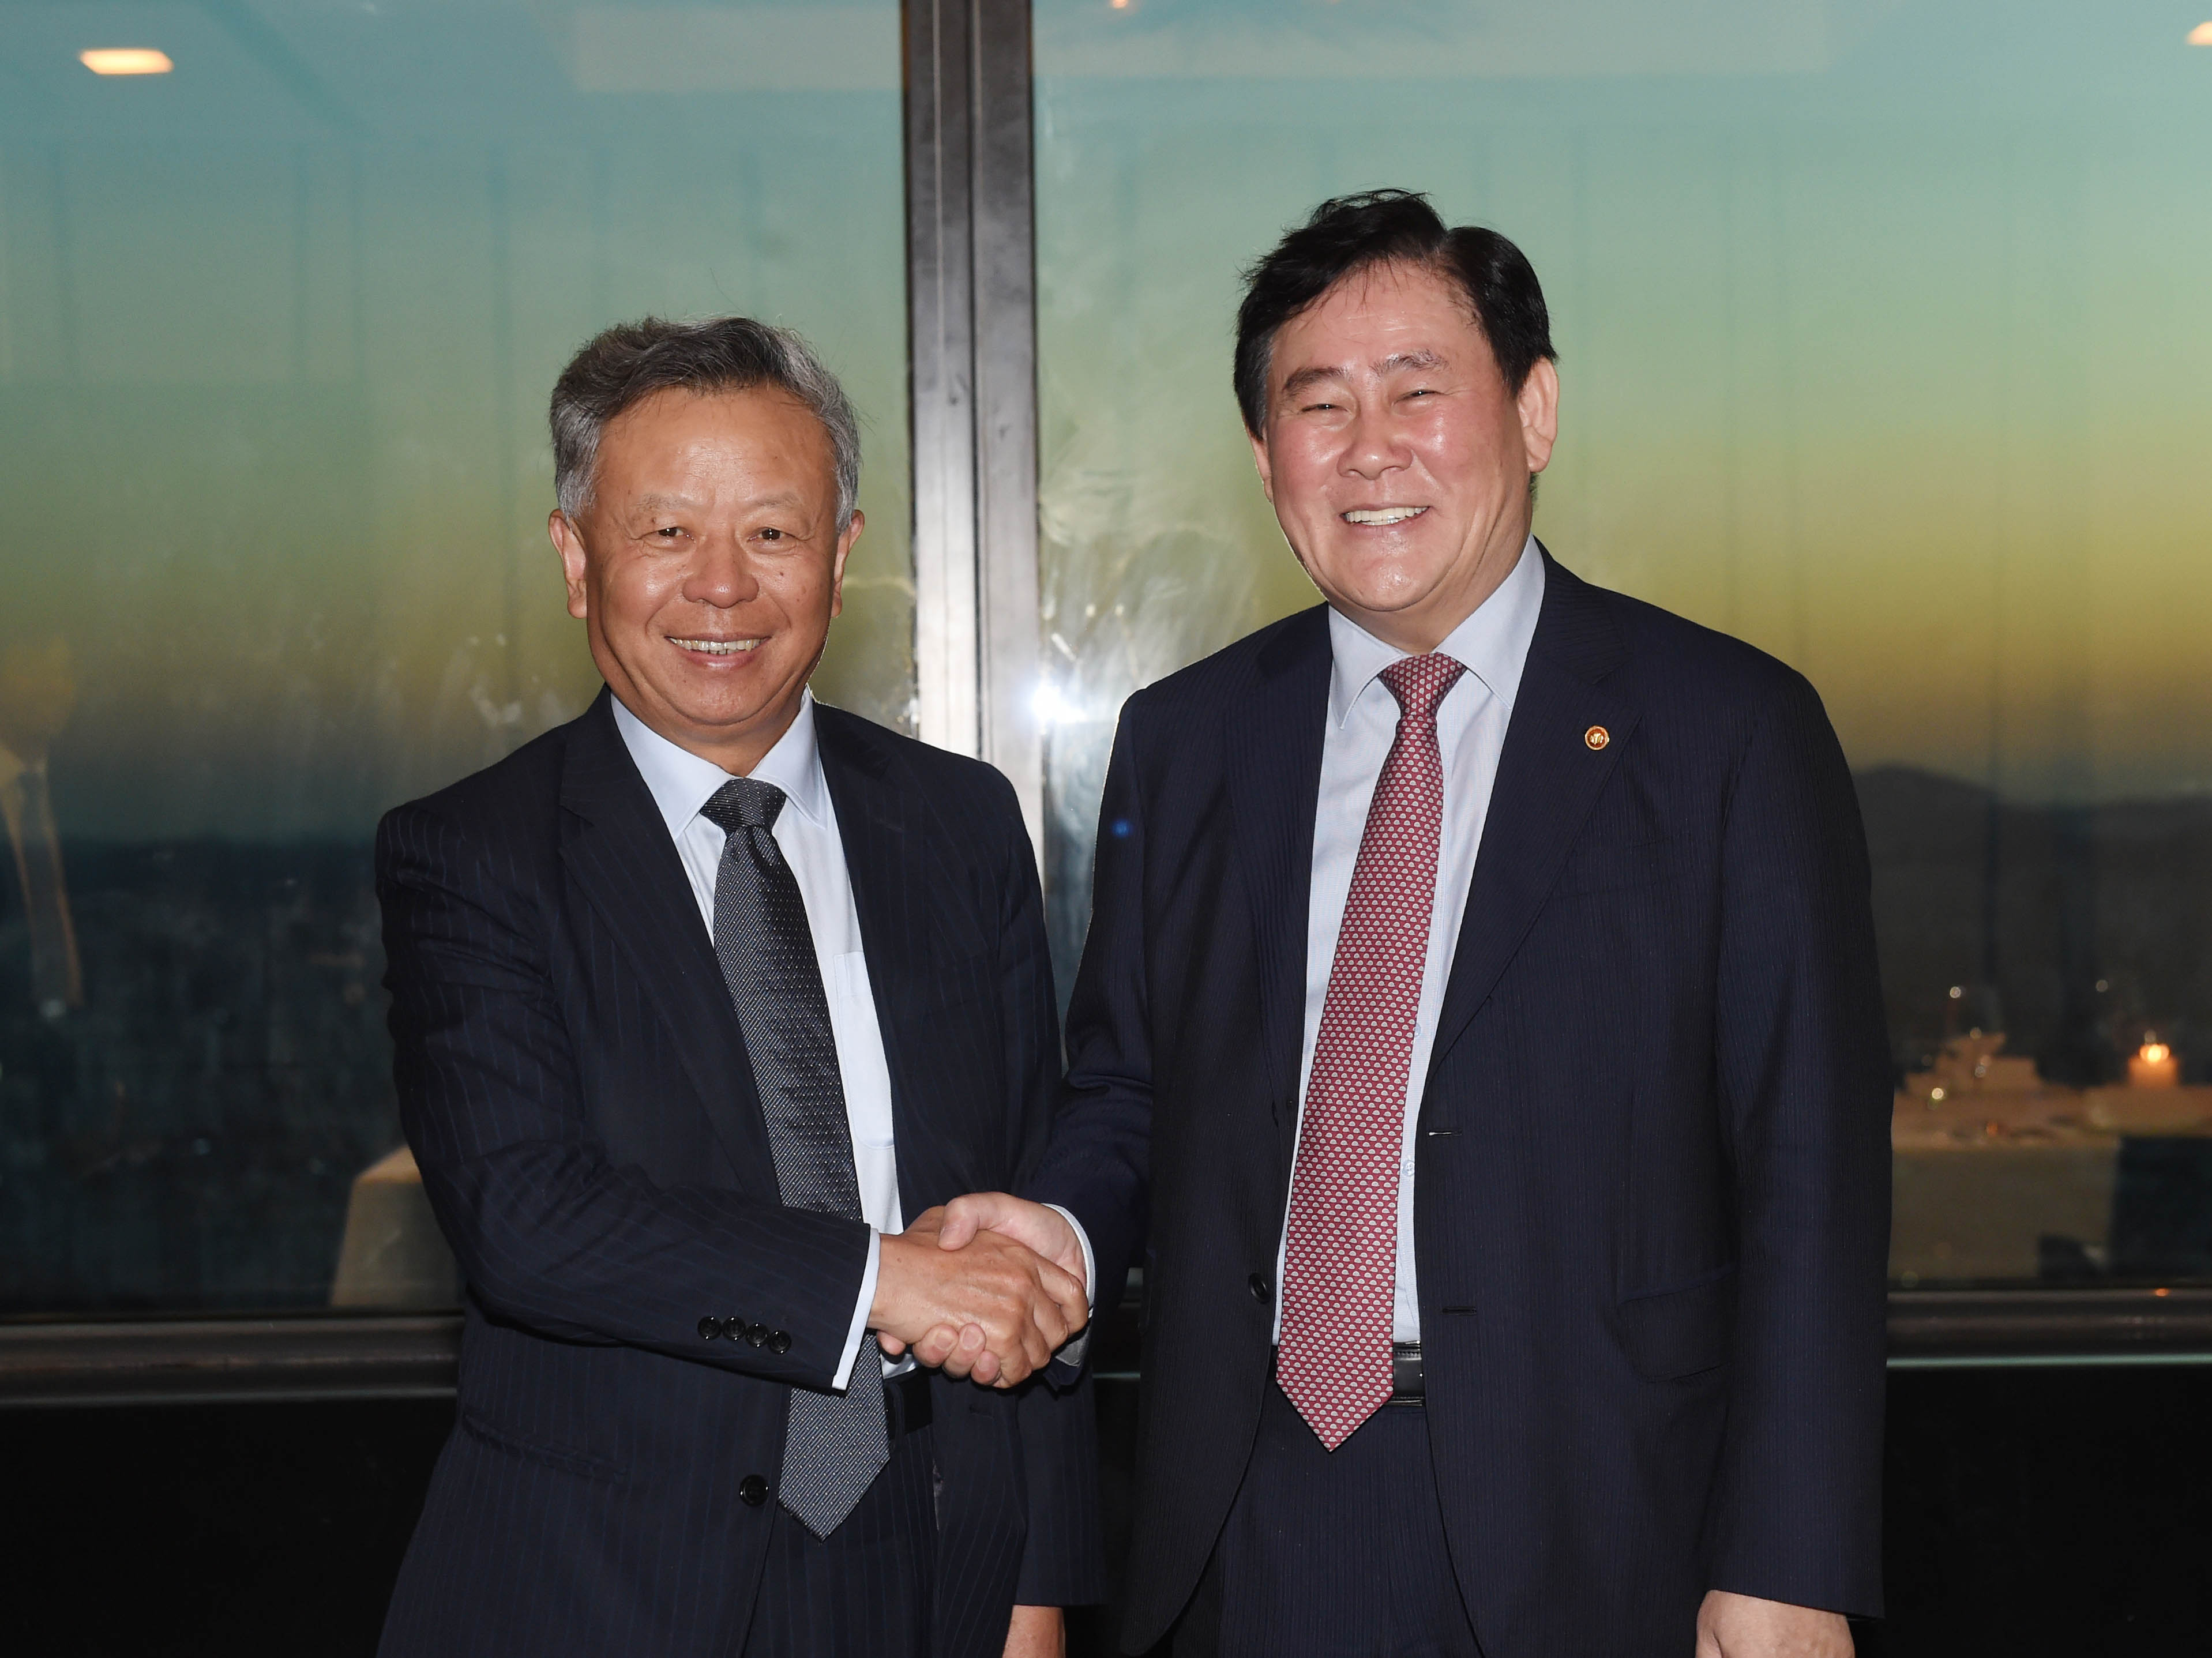 Deputy Prime Minister Choi meets with President-designate Jin Liqun of the Asian Infrastructure Investment Bank